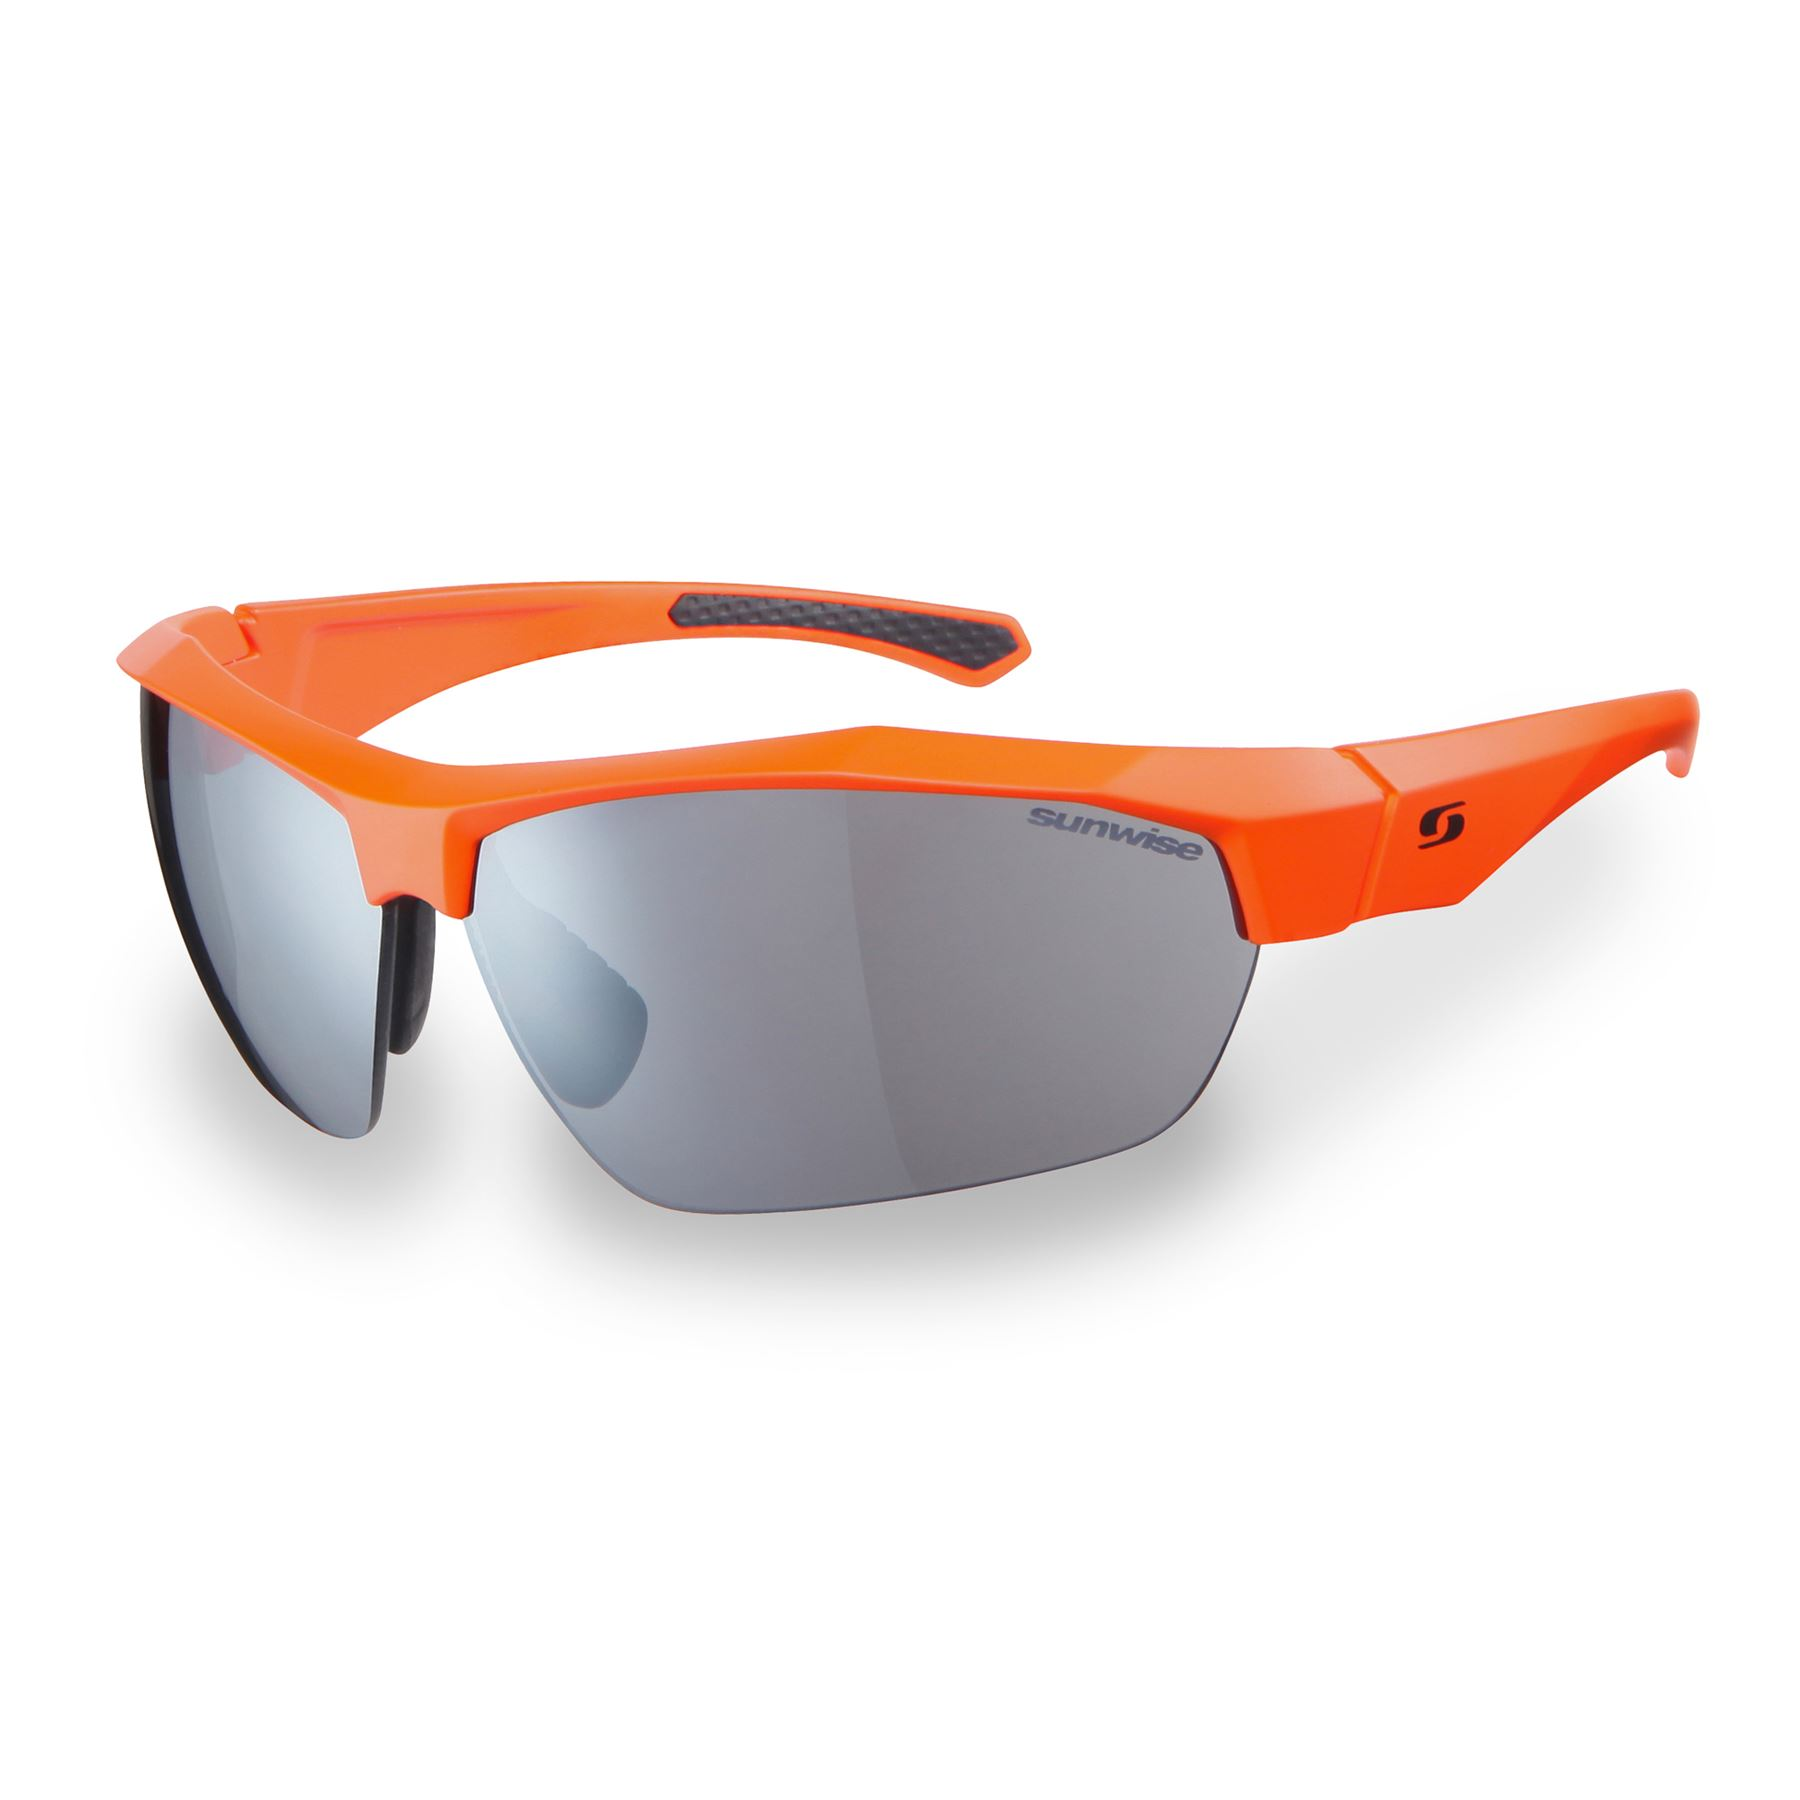 14e966ecf7b Cycling Sunglasses Changeable Lenses - Bitterroot Public Library